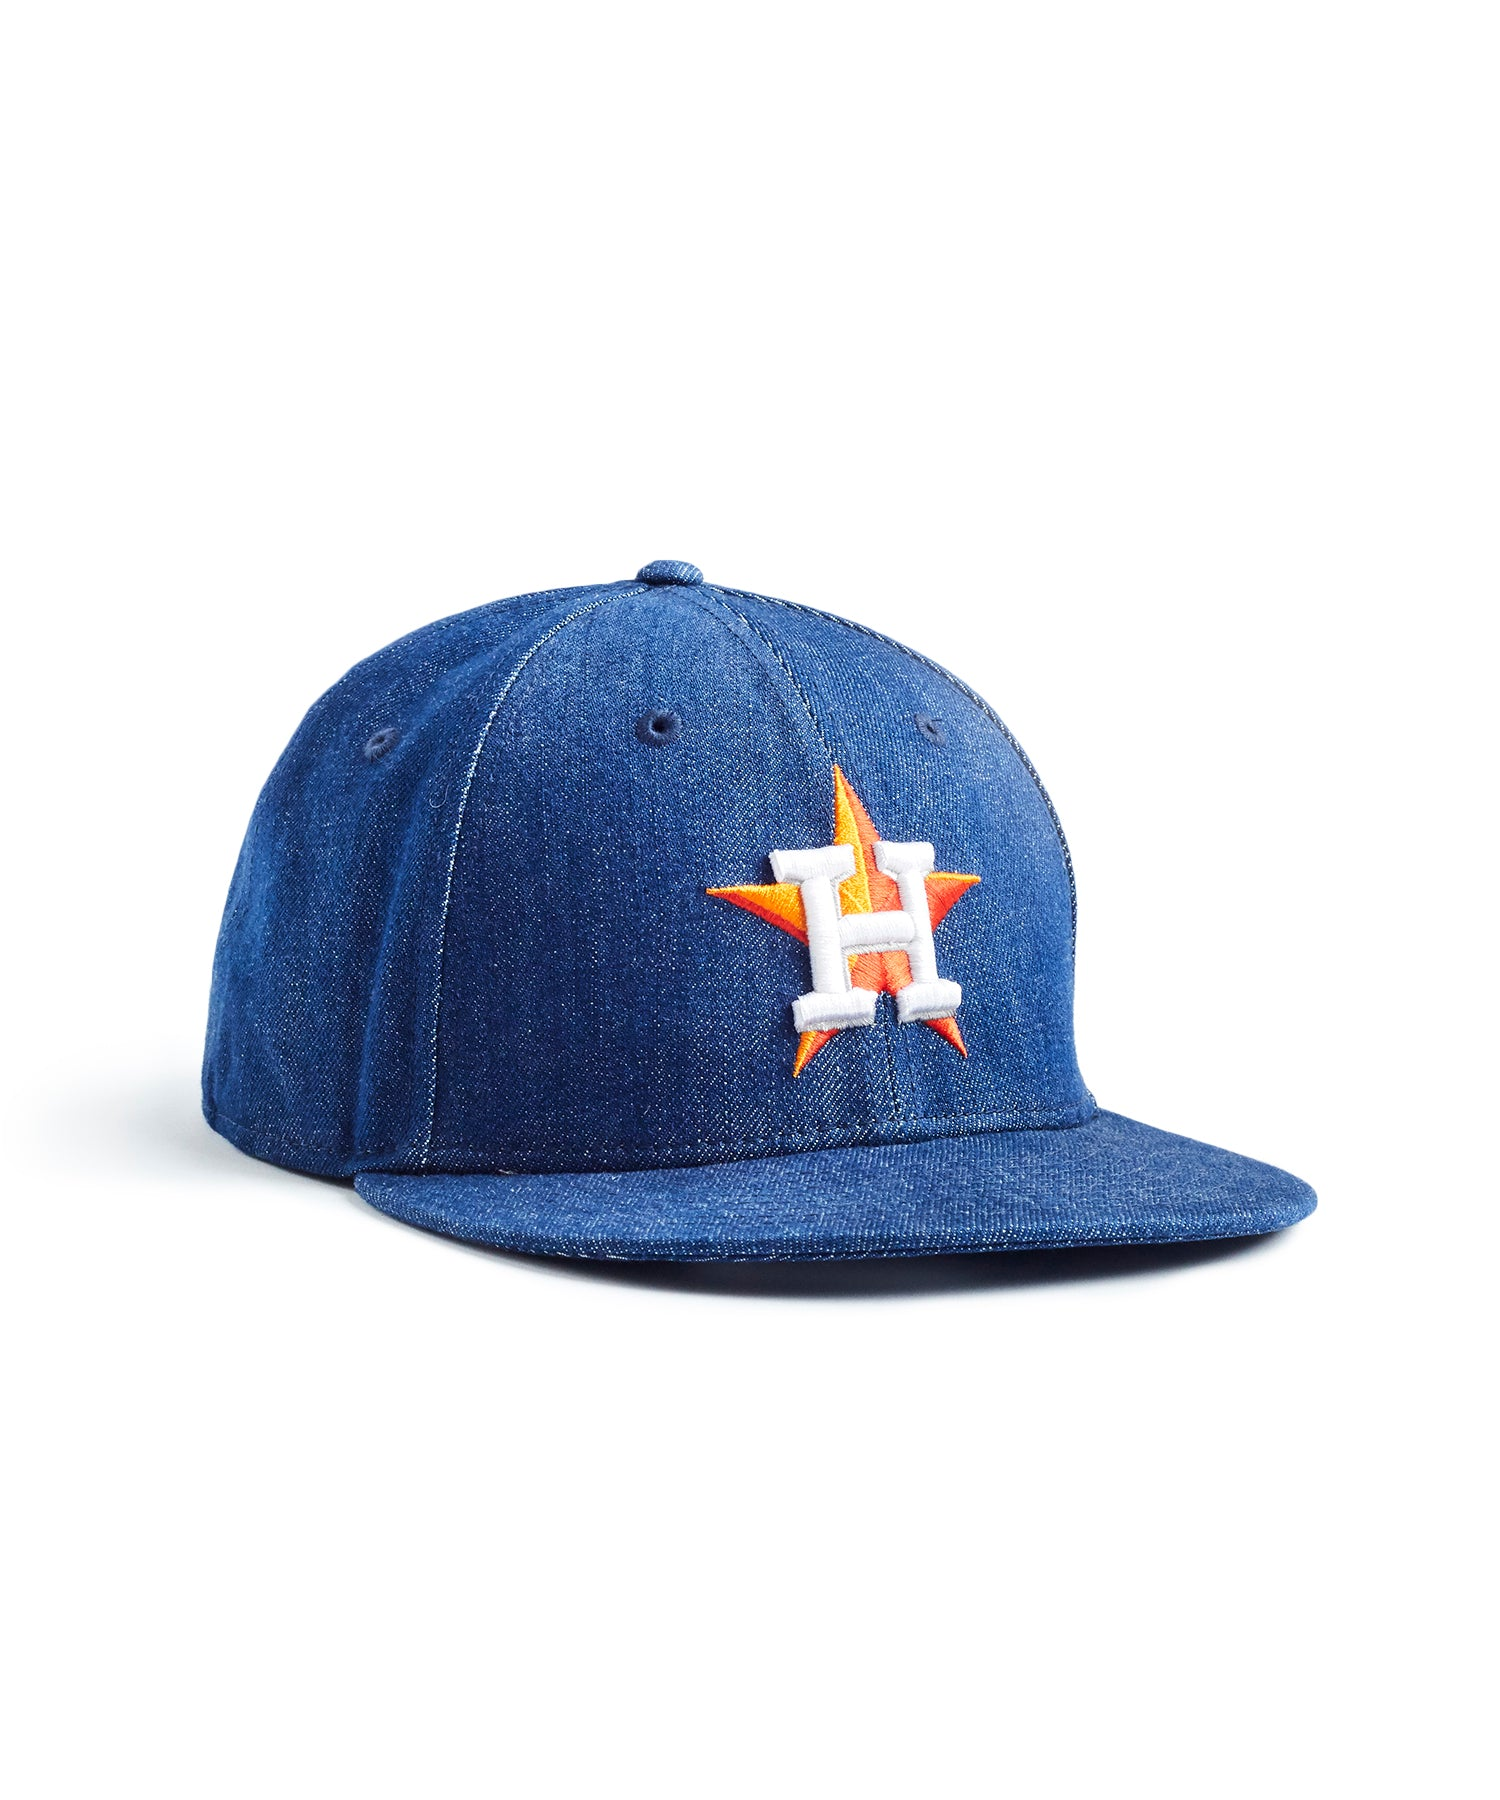 2d2cfe94a TODD SNYDER + NEW ERA MLB HOUSTON ASTROS CAP IN CONE DENIM